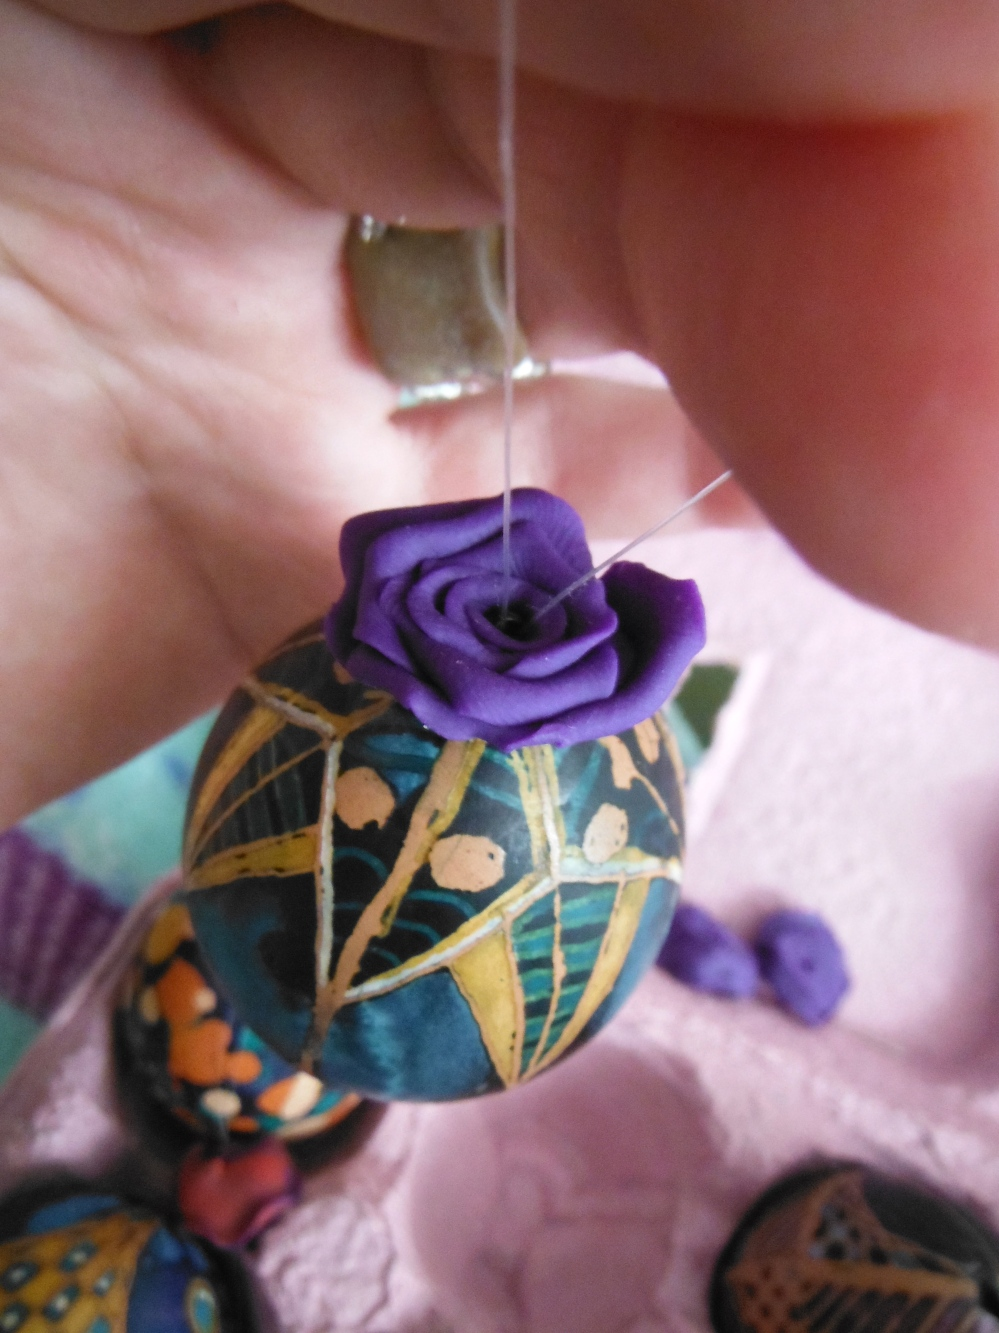 I made some flowers to thread through the line and cover the hole.